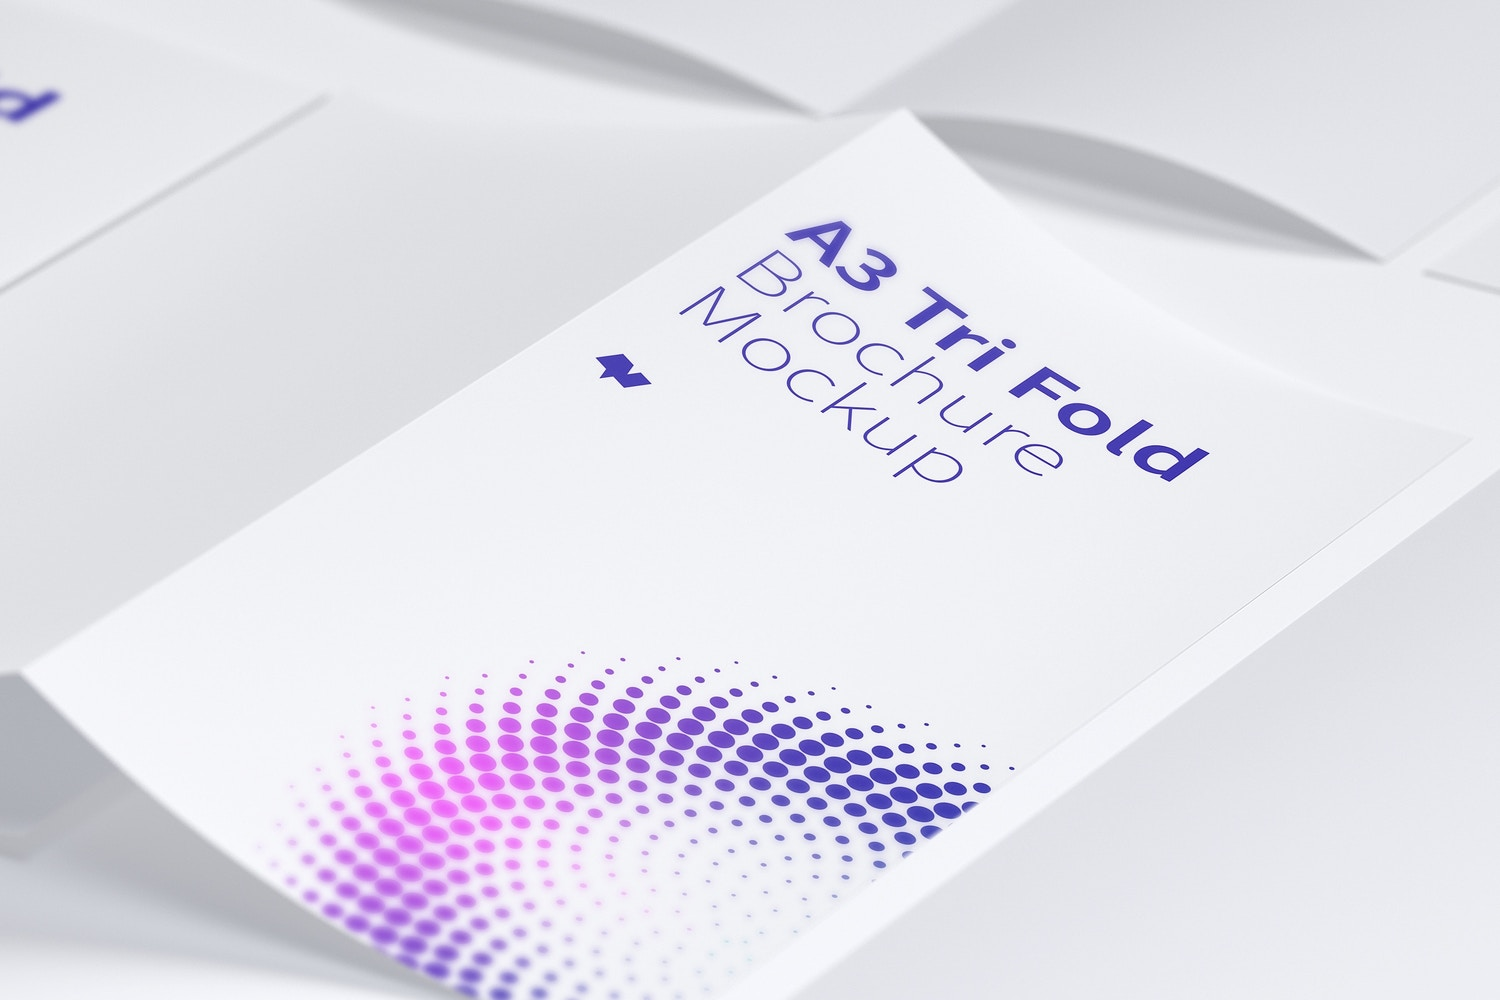 A3 Trifold Brochure Mockup 04 by Original Mockups on Original Mockups